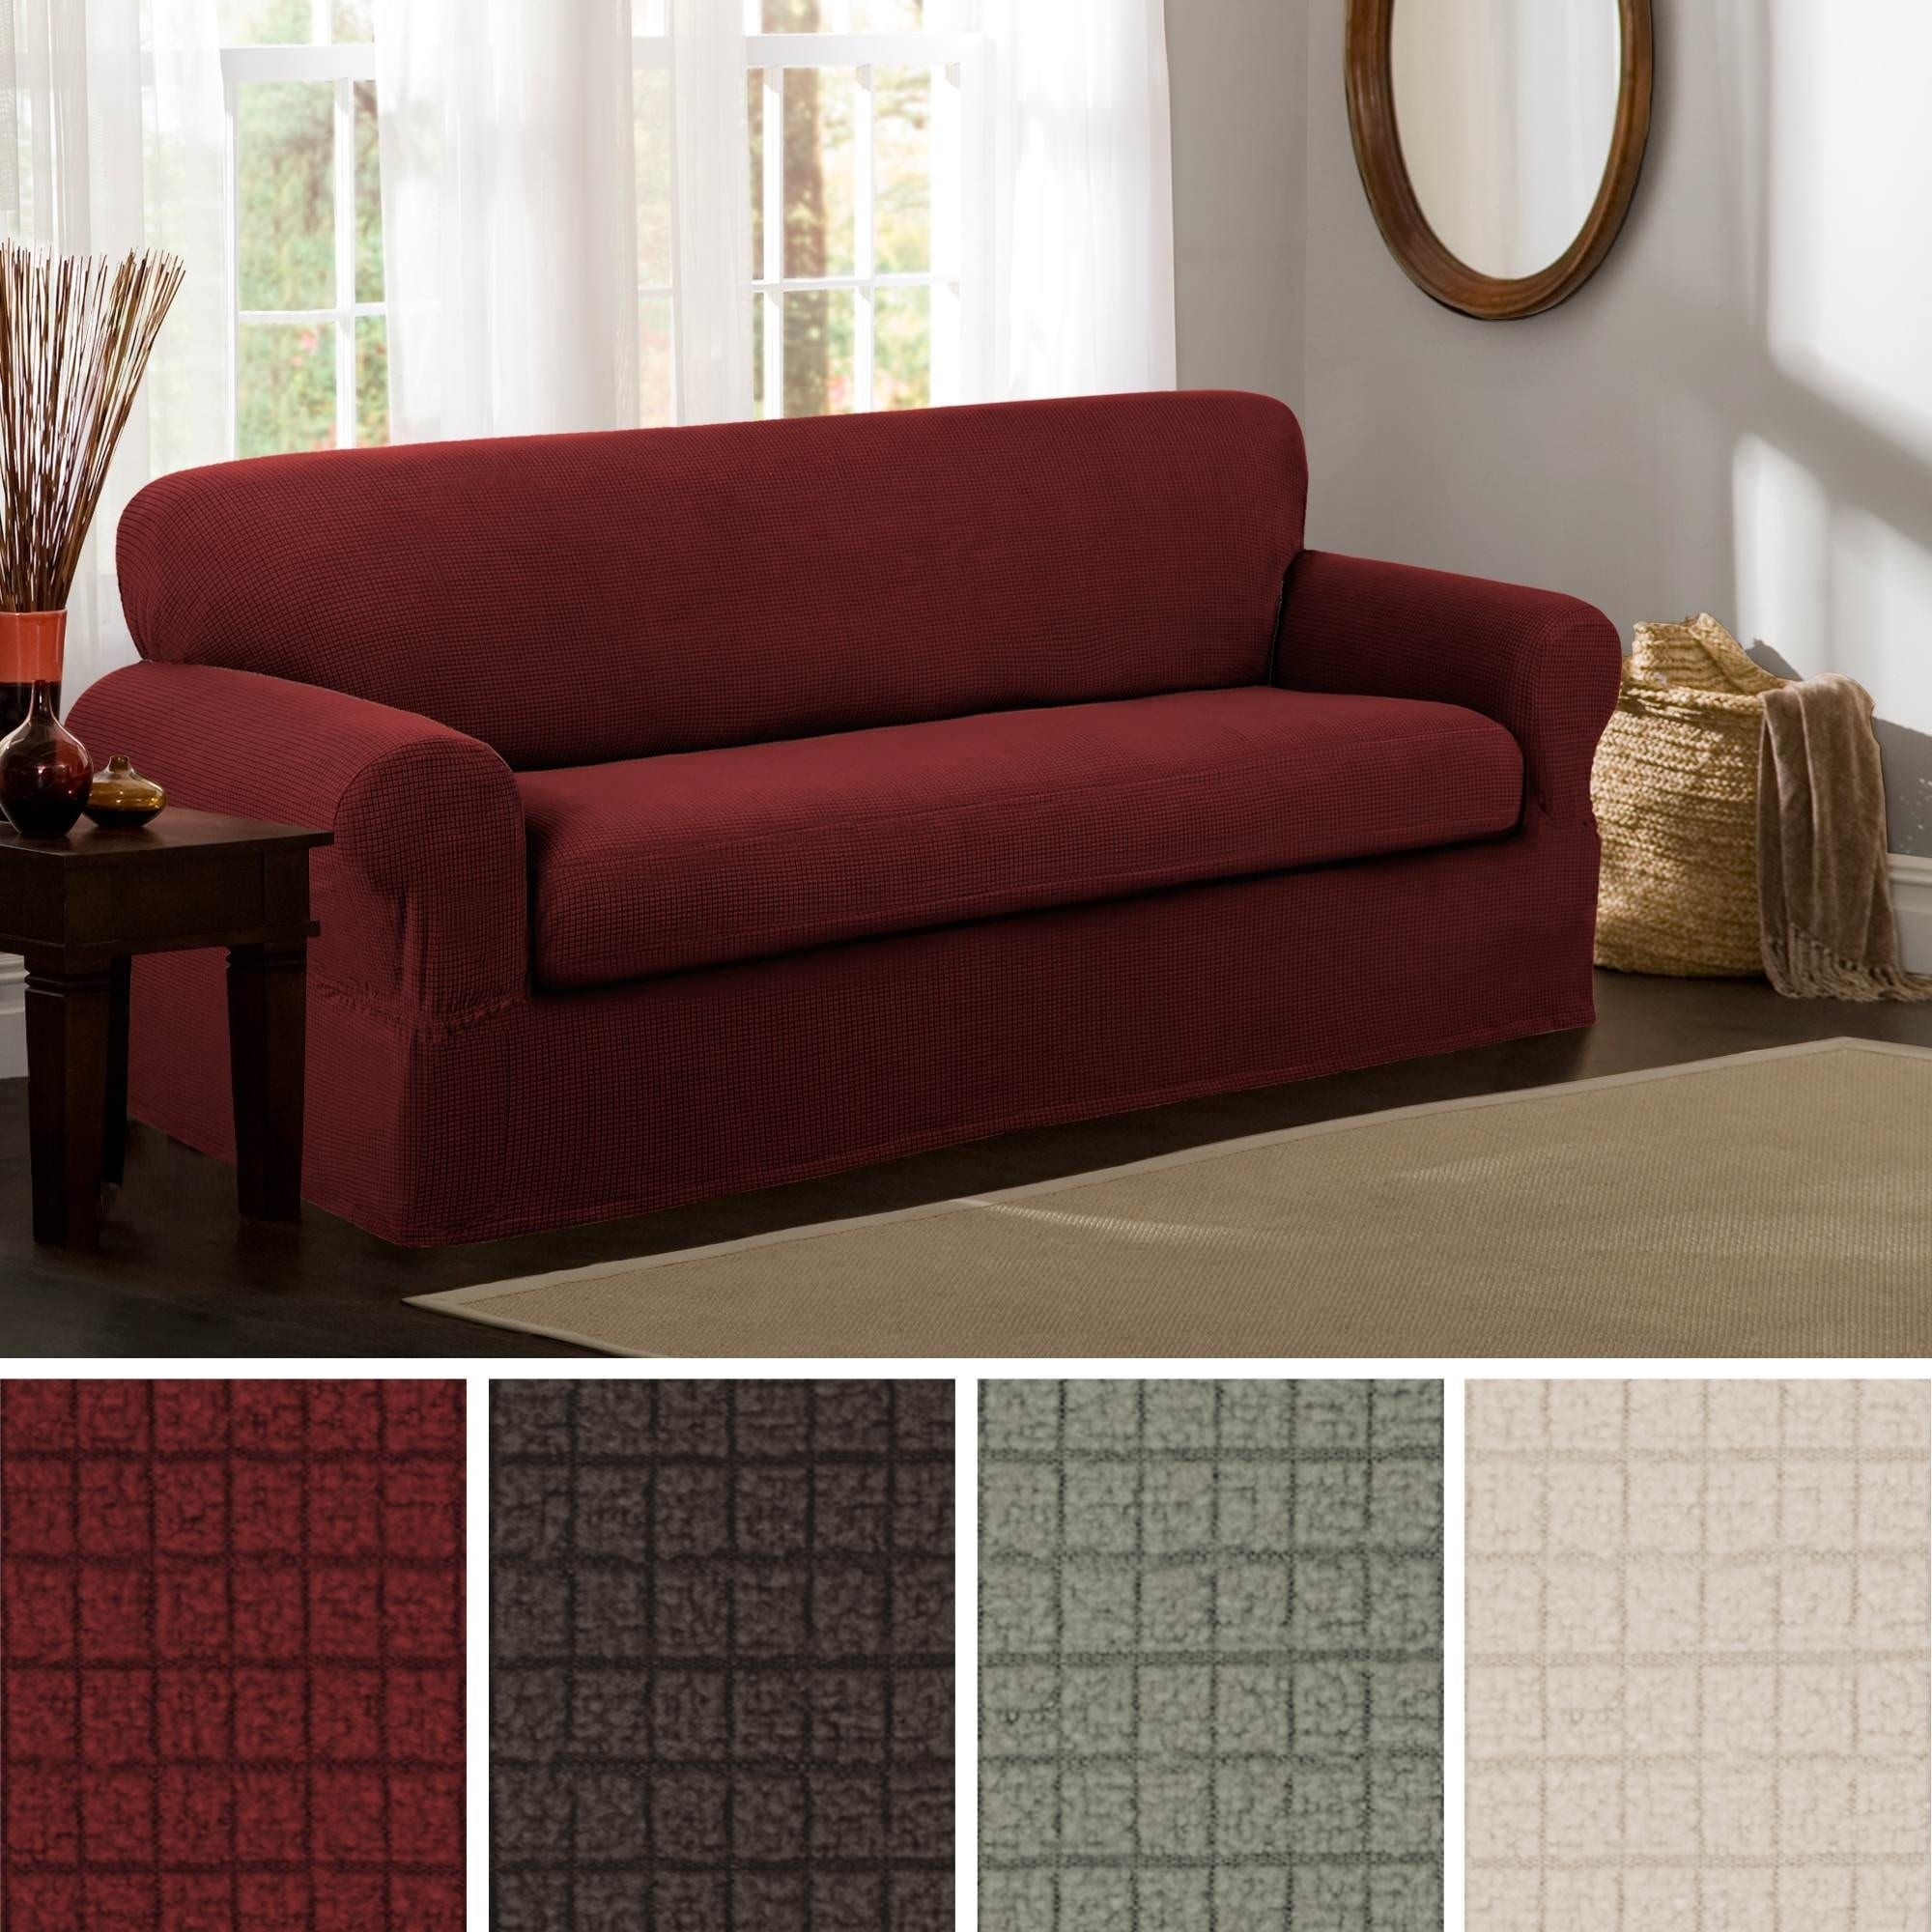 Shop Maytex Reeves Stretch 2 Piece Sofa Slipcover Free Shipping